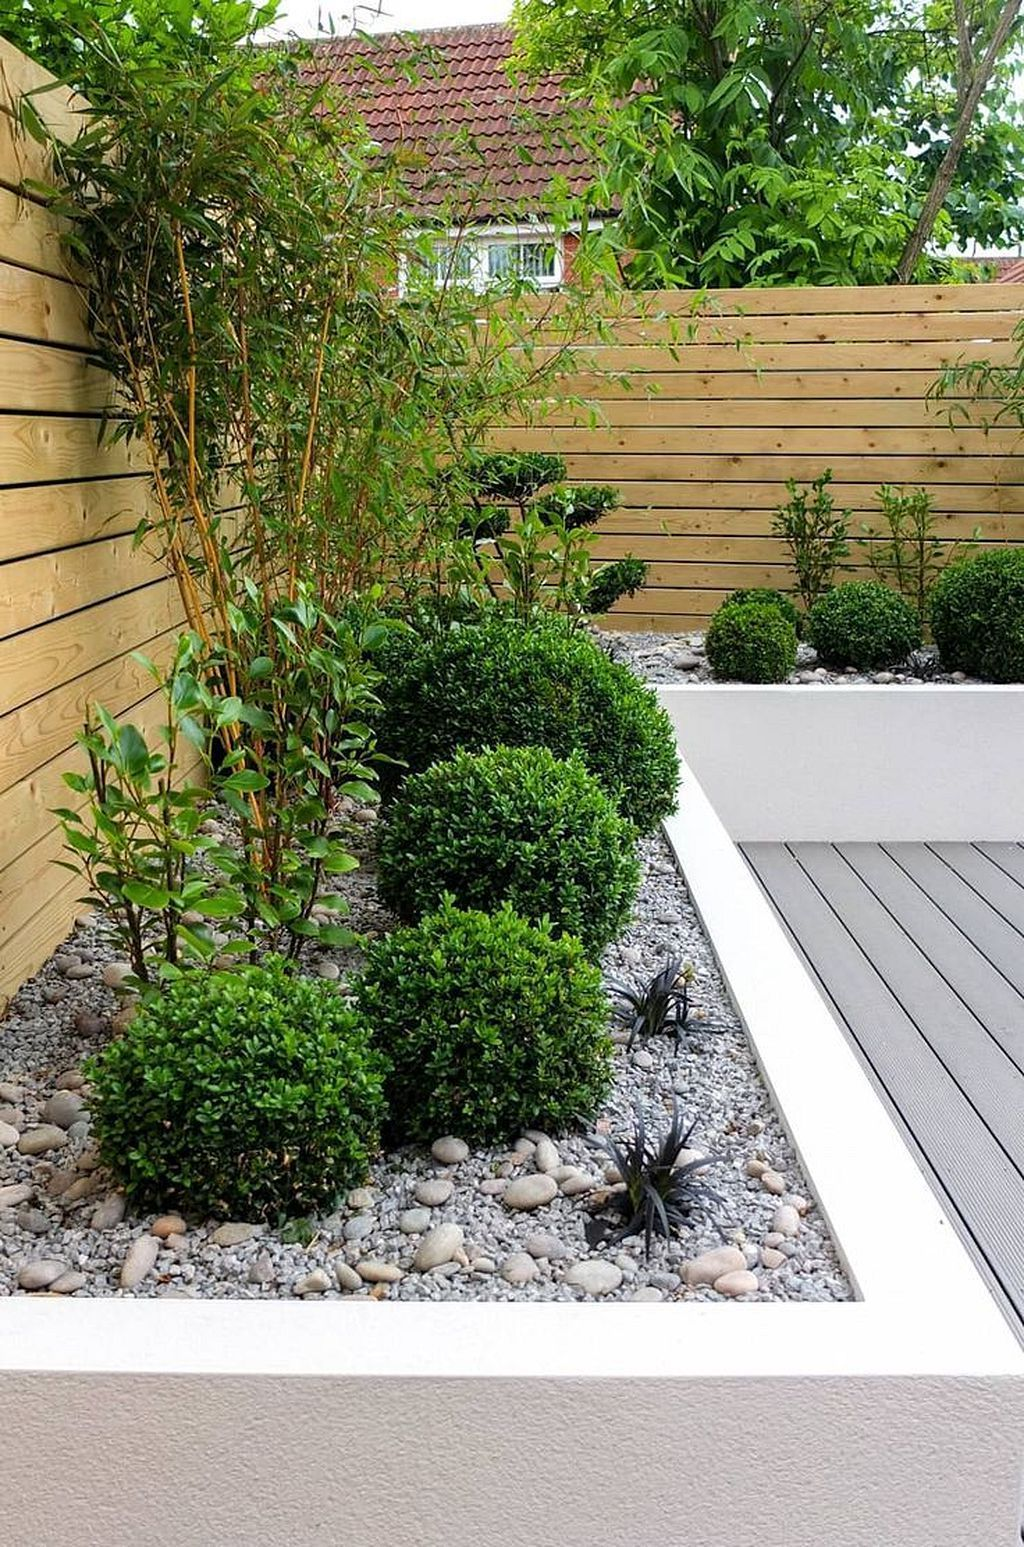 Admirable Gardens For Amazing Small Spaces Low Maintenance Garden Small Garden Design Small Gardens